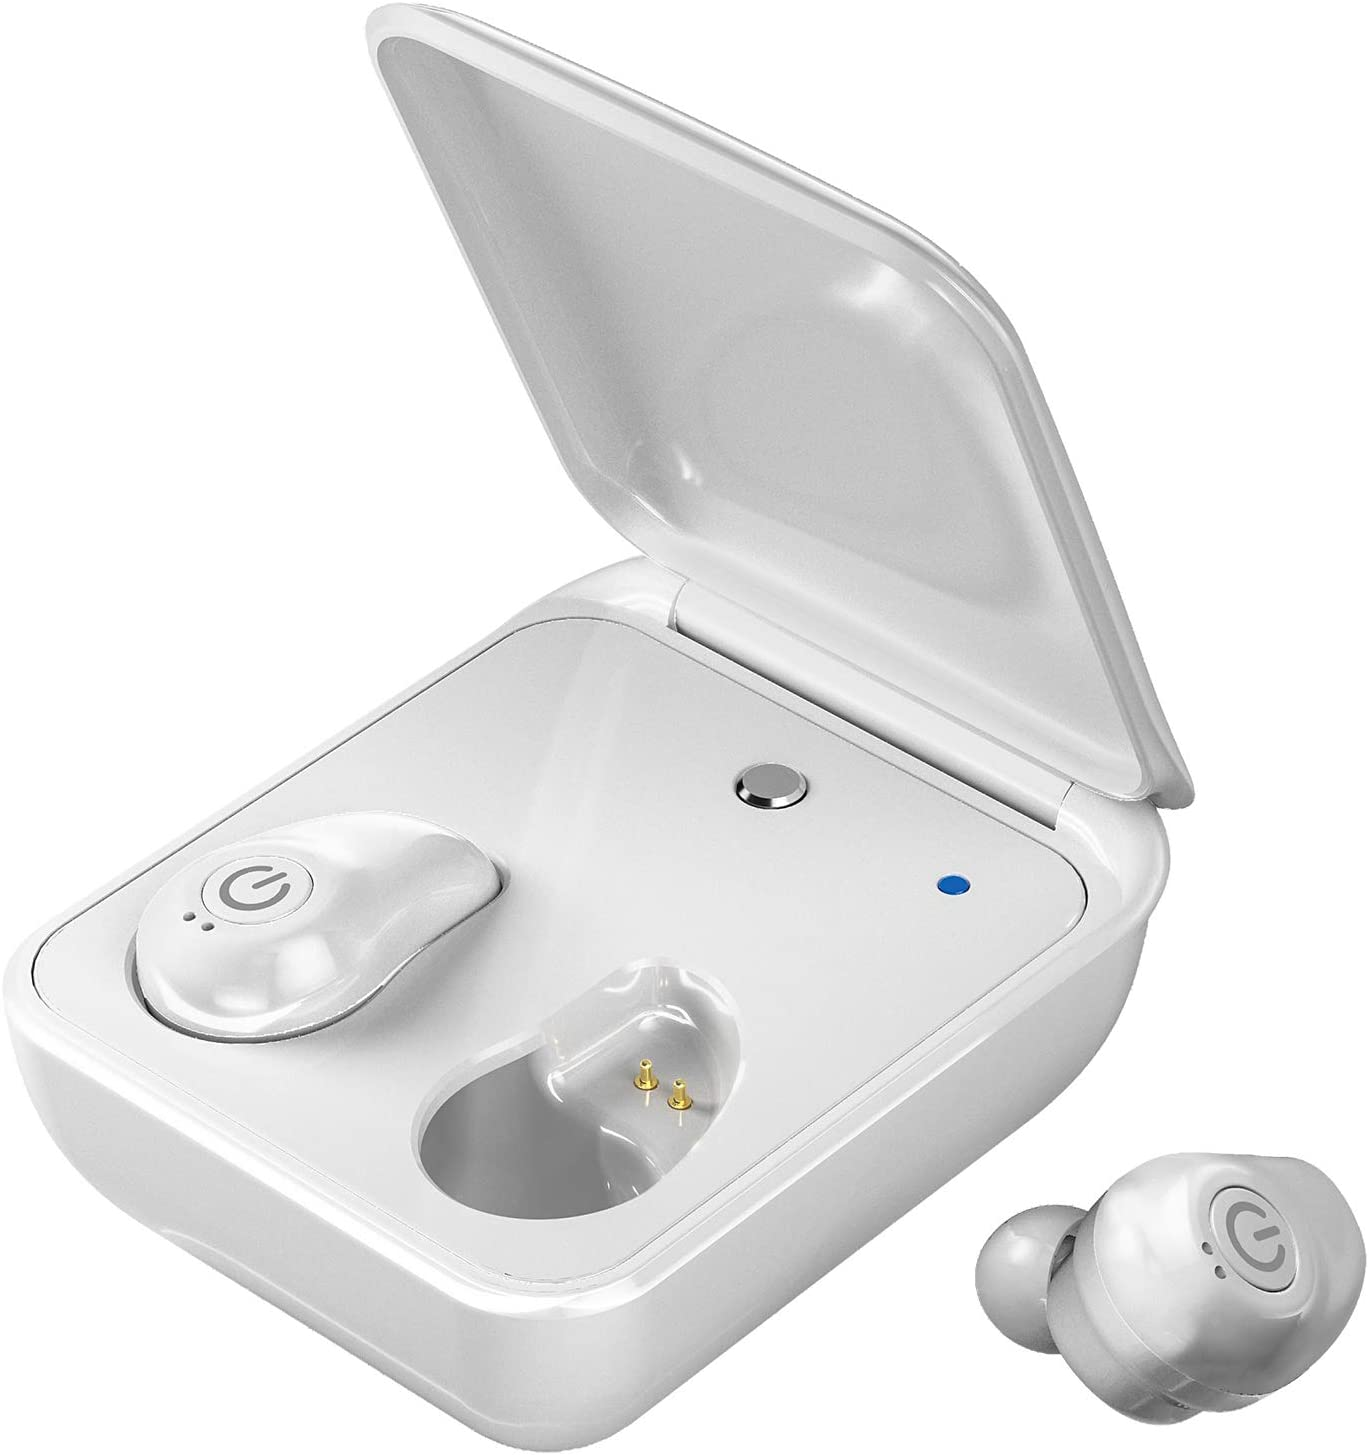 Wireless Bluetooth Earbuds Earteana Bluetooth 5.0 Cordless Headphone with Charging Case Dual Built-in Mic IPX7 Waterproof HD Stereo Sound.